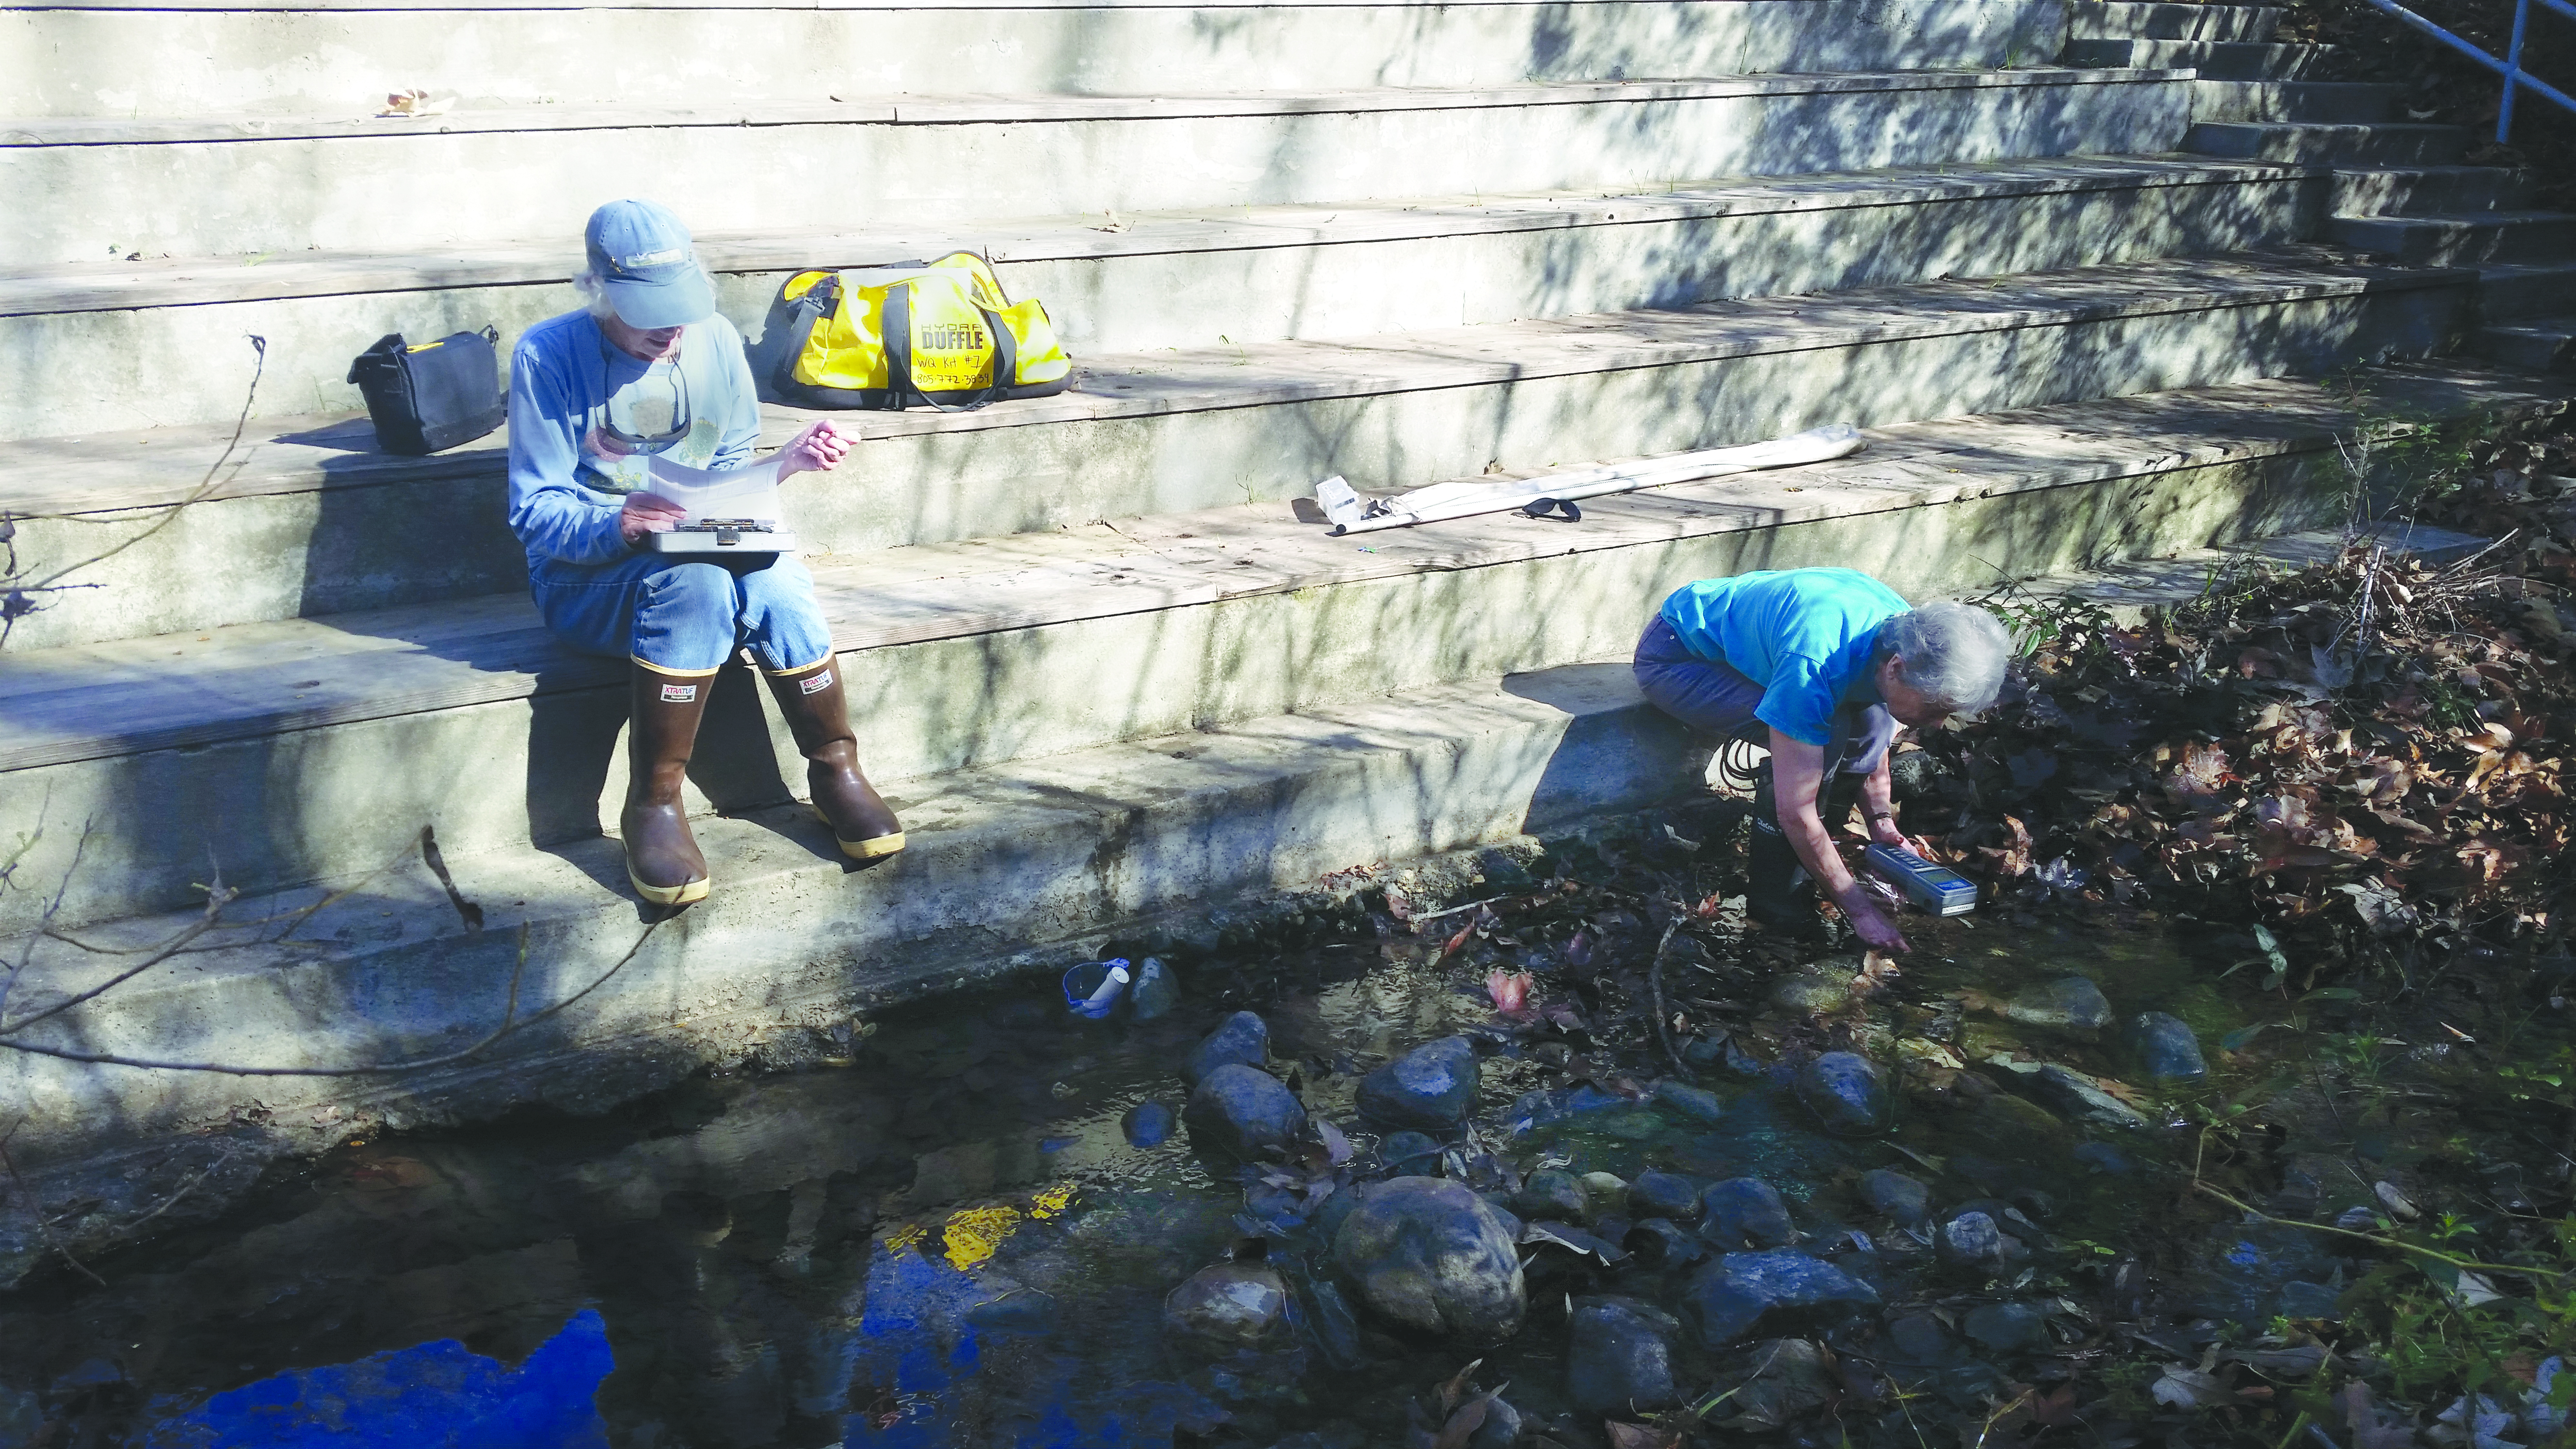 Estuary Program volunteers conduct monthly monitoring on Pennington Creek in the Rancho El Chorro Outdoor School campus. The collected data, like water temperature and oxygen, indicate whether the creek would support sensitive fish like steelhead.